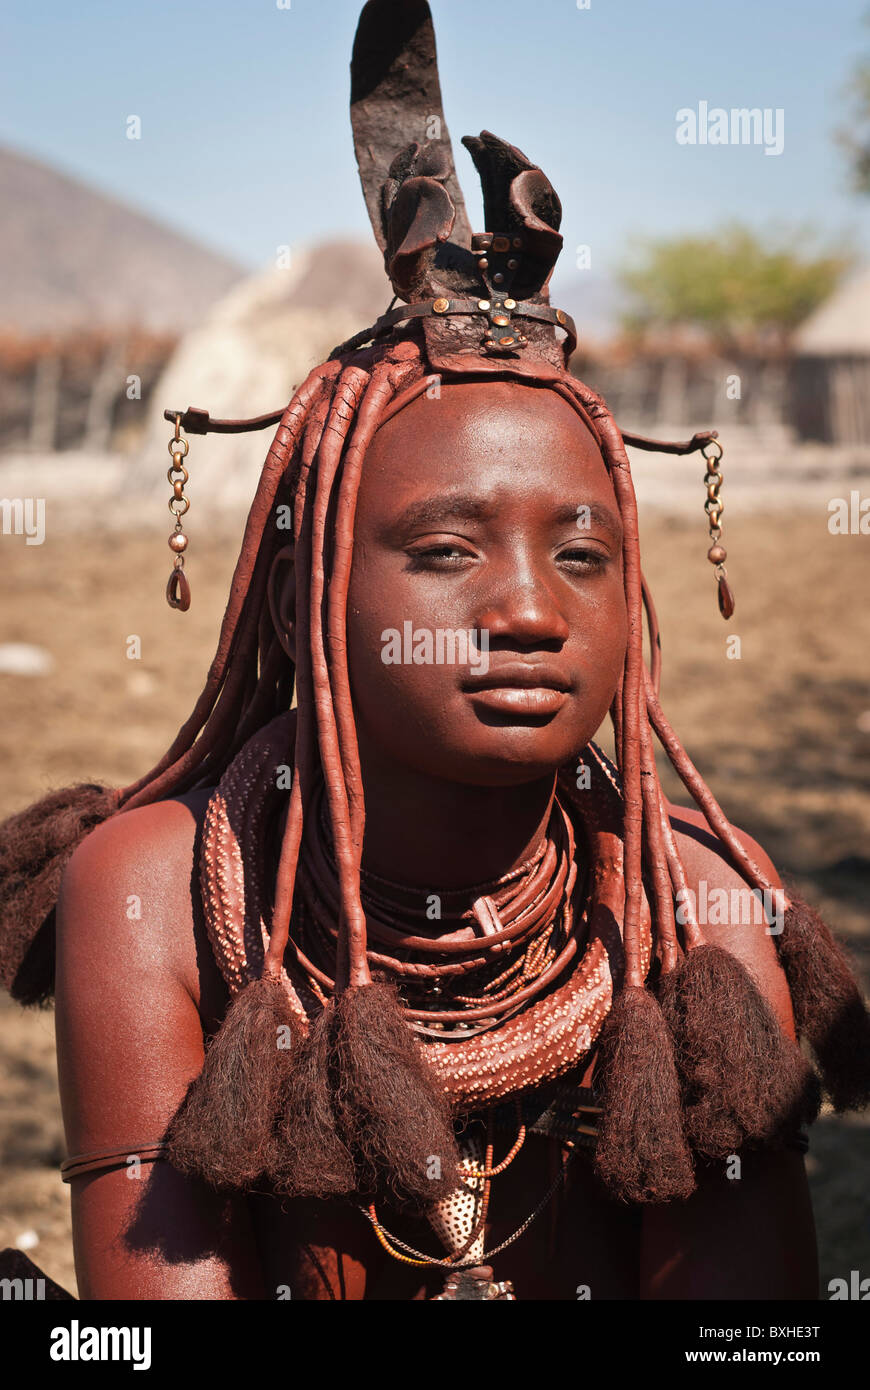 Himba woman in a village near Epupa Falls, Namibia, Africa. - Stock Image